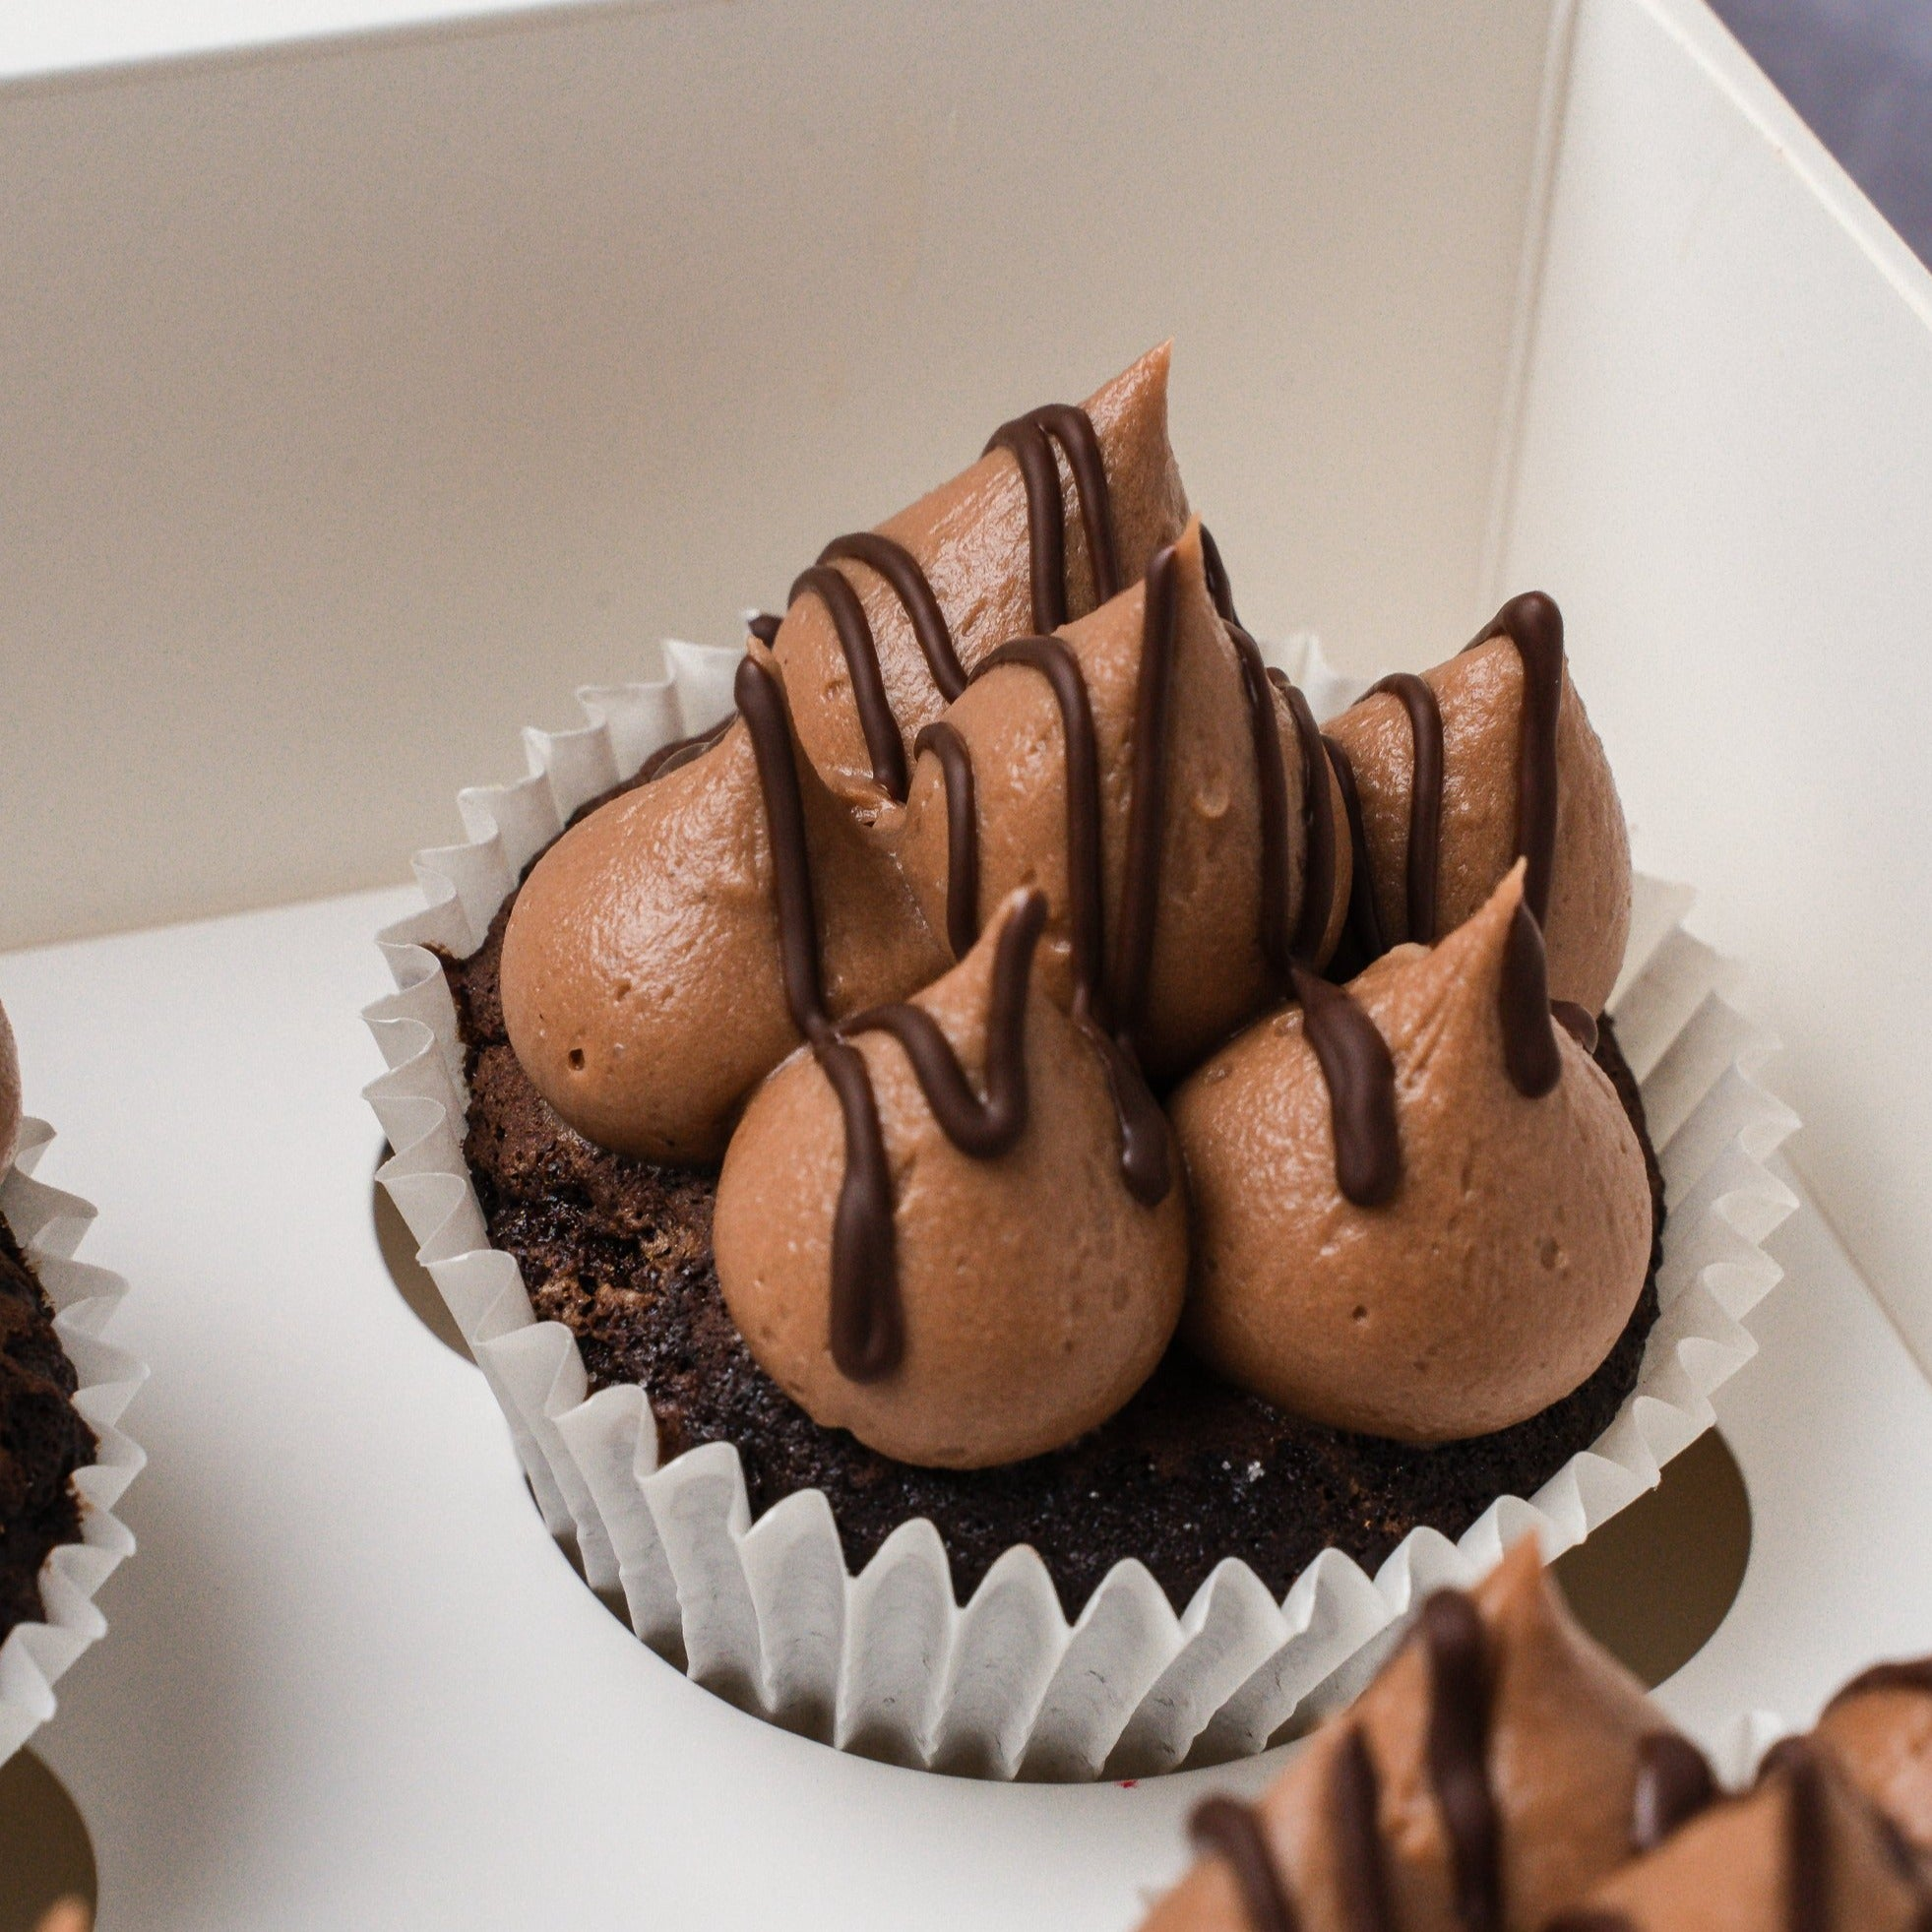 Chocolate Cupcakes (Free from Gluten)